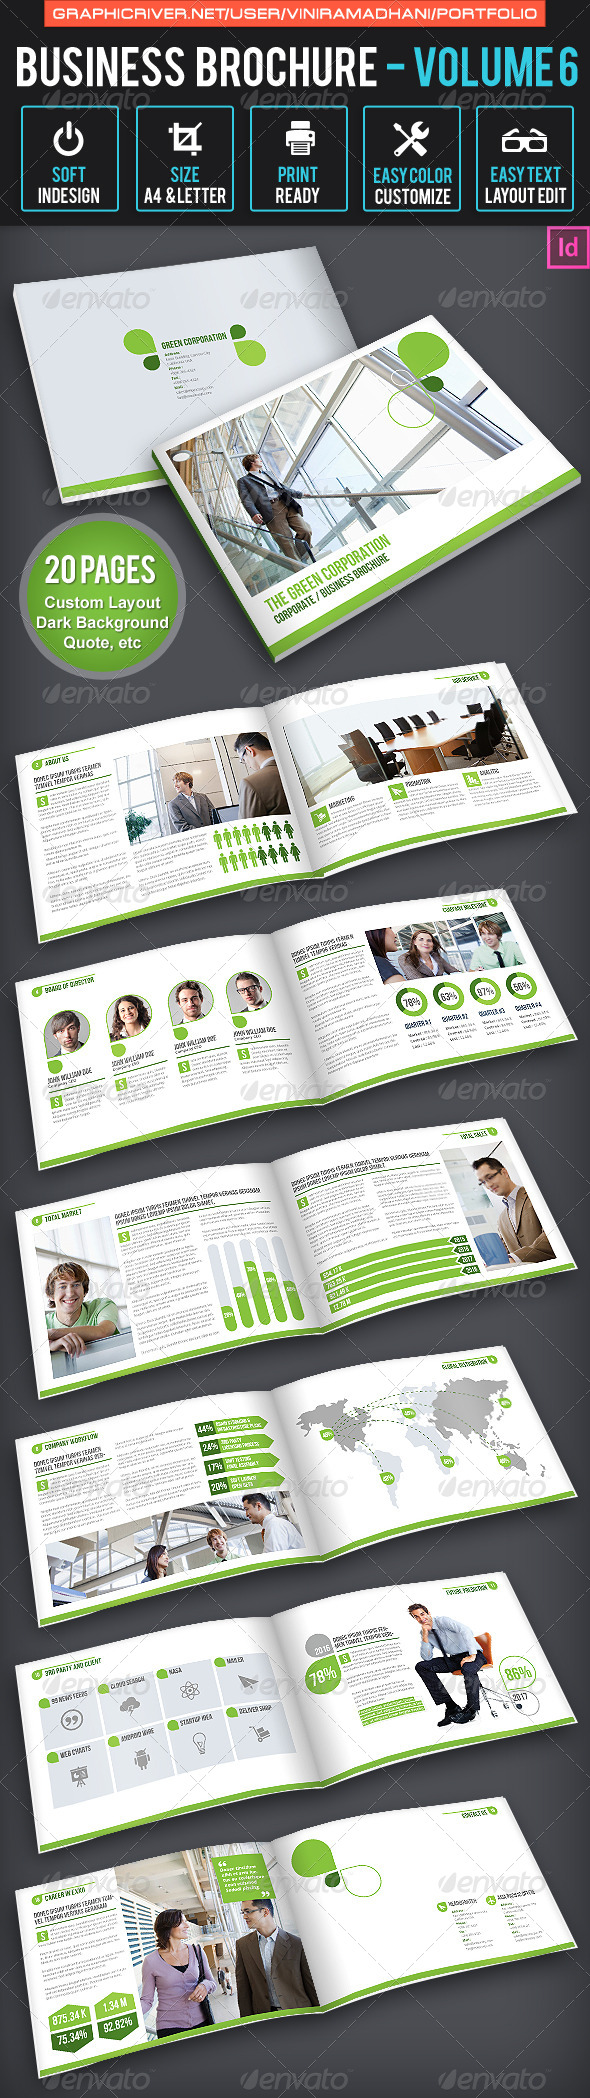 GraphicRiver Business Brochure Volume 6 6534846